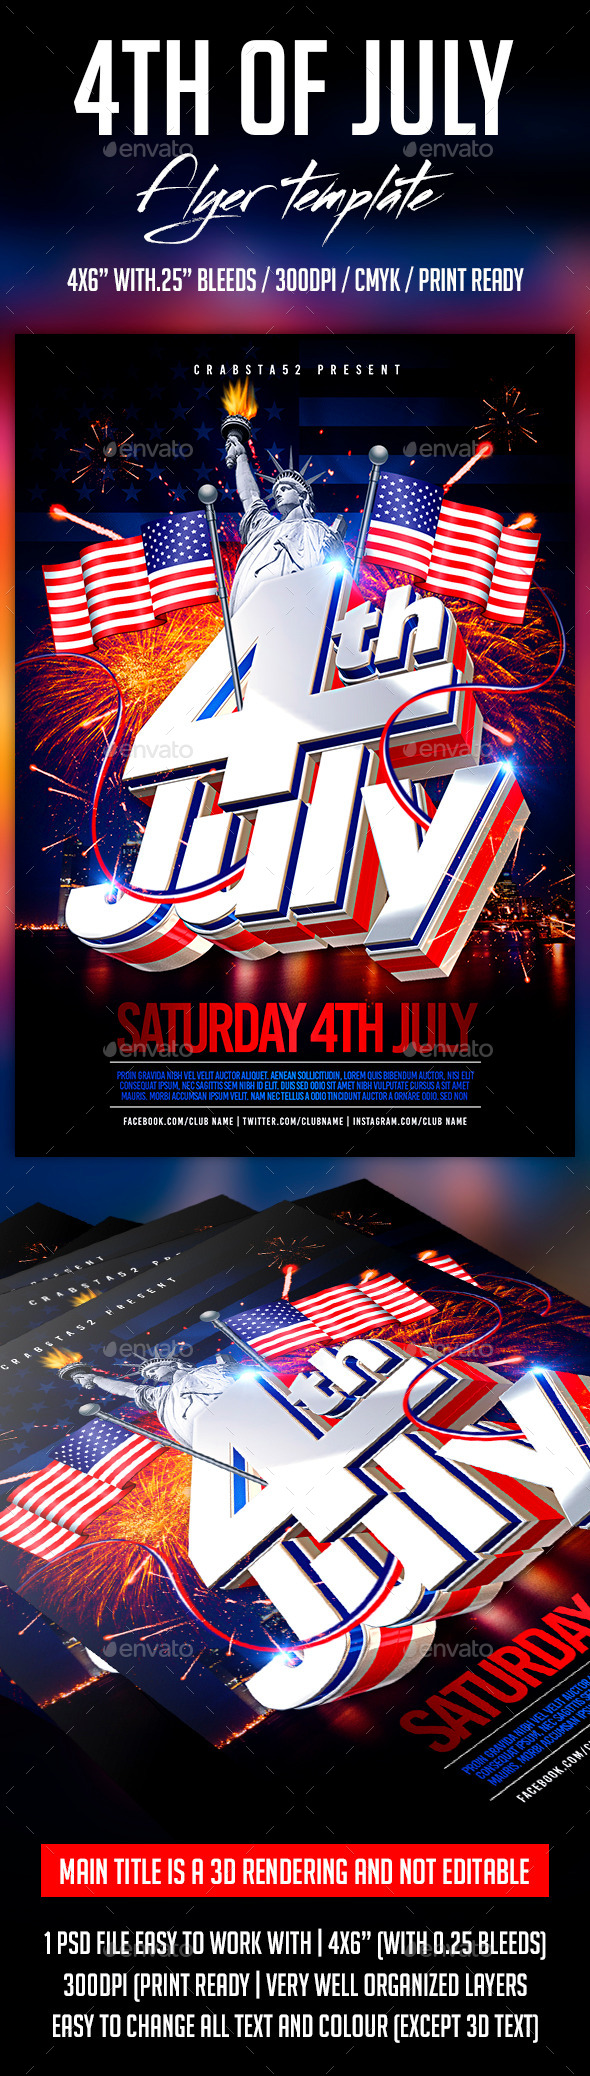 GraphicRiver 4th of July Flyer Template 11827544